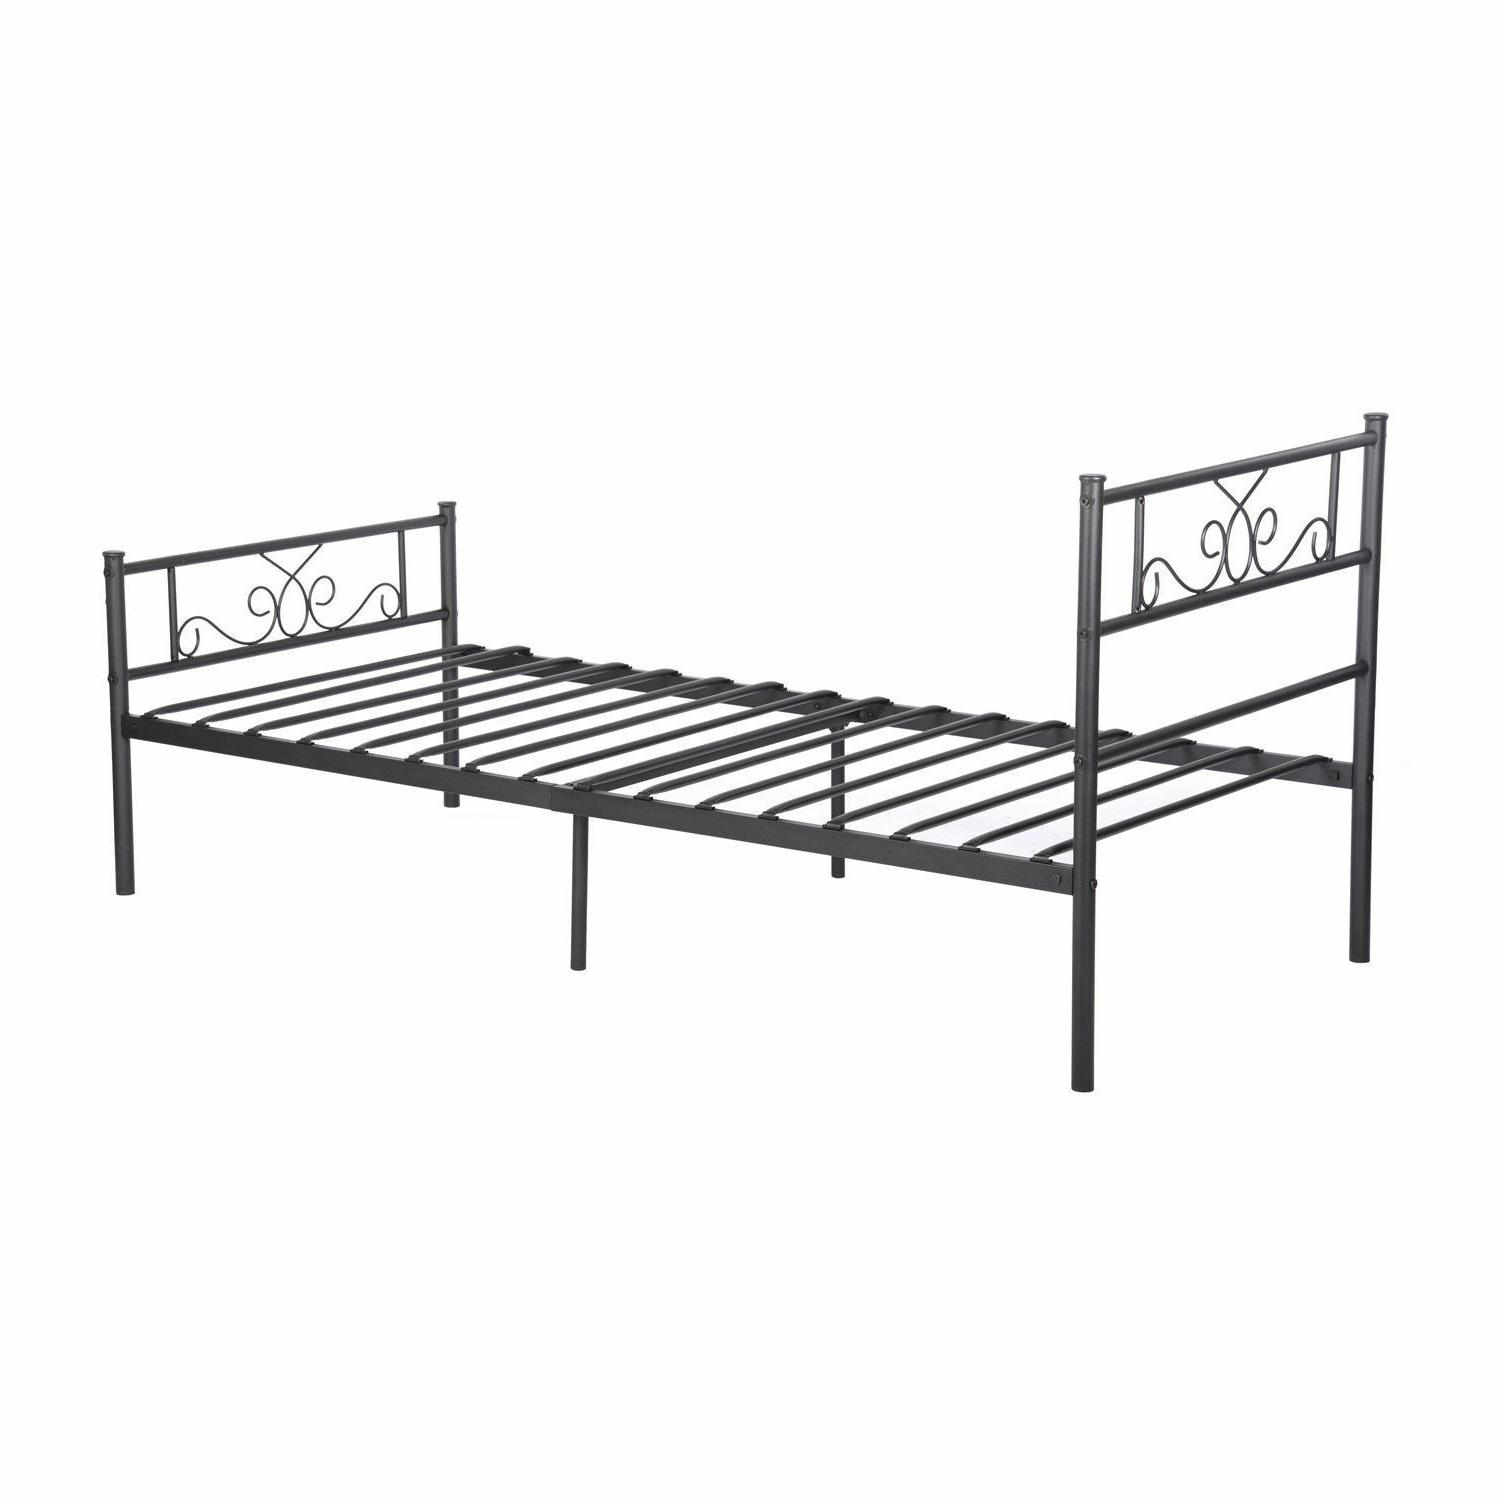 Platform Bed Queen Twin Bed Foundation Headboard